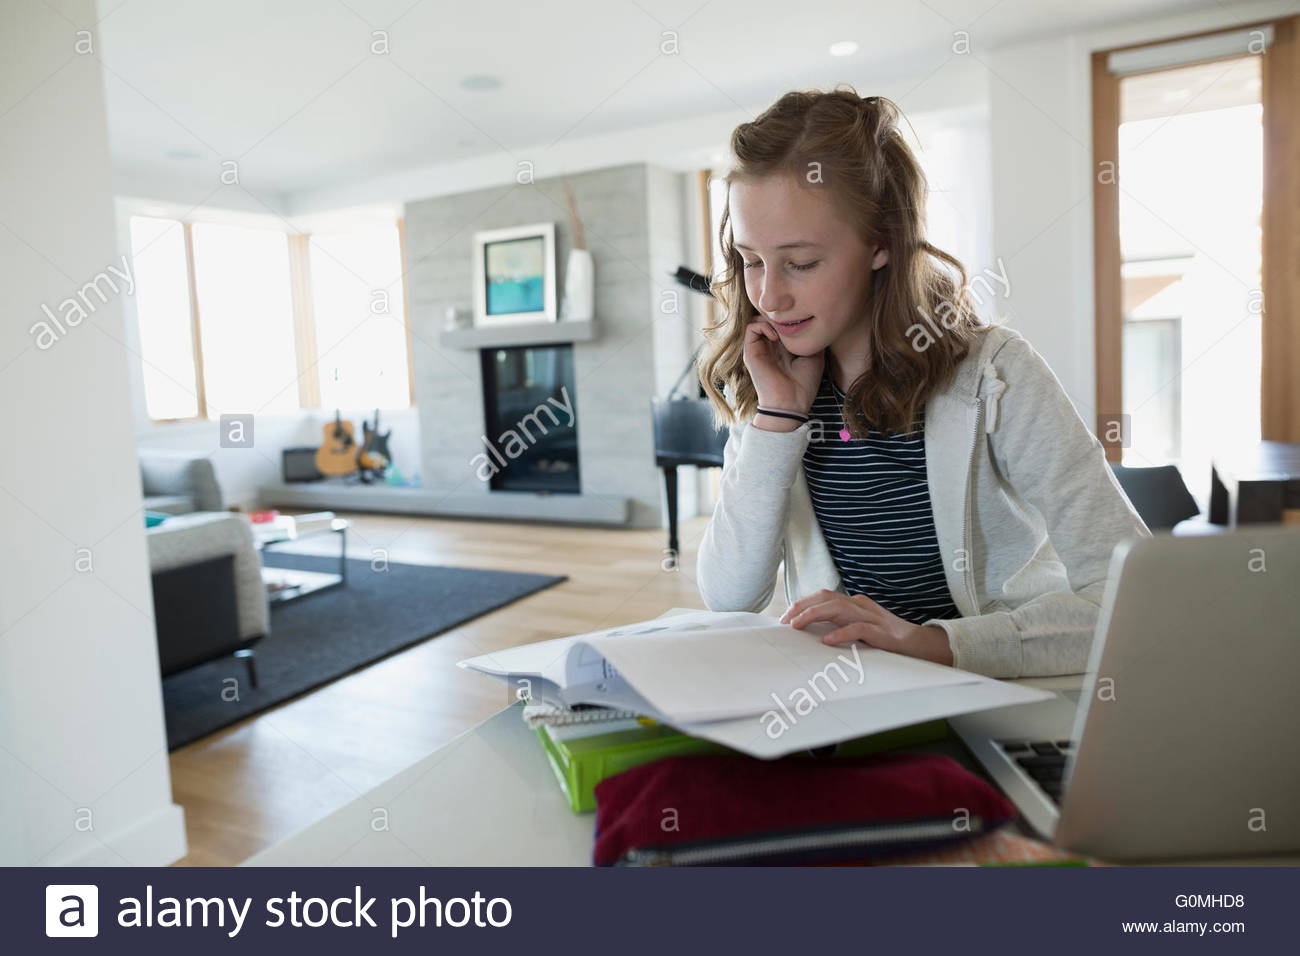 Girl looking at notebook doing homework kitchen counter - Stock Image